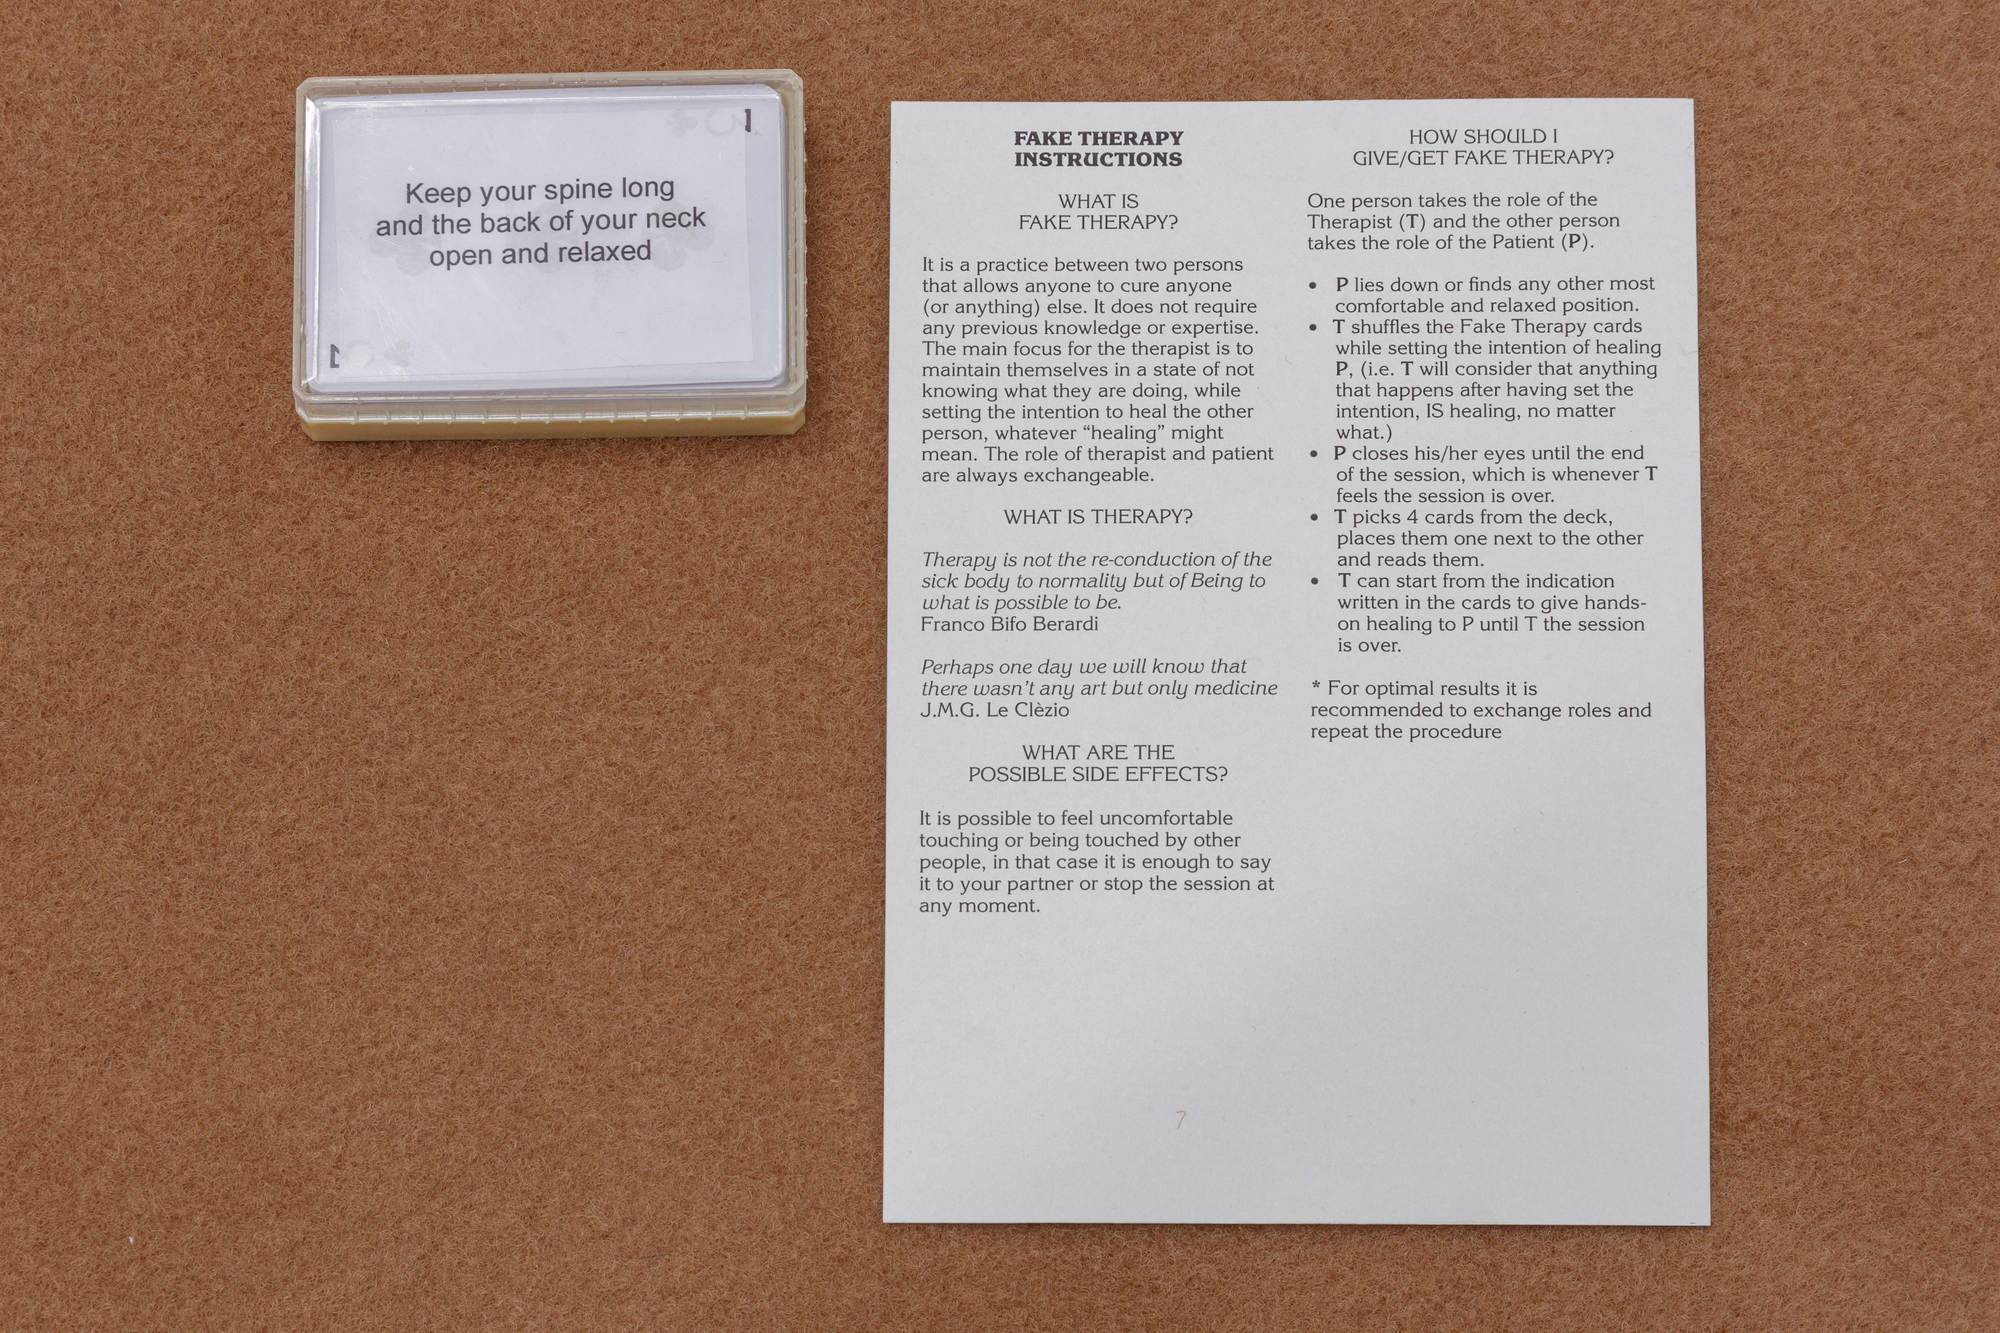 'The Reading Room', Valentina Desideri & Denise Ferreira da Silva, 2015, taro cards and instructions